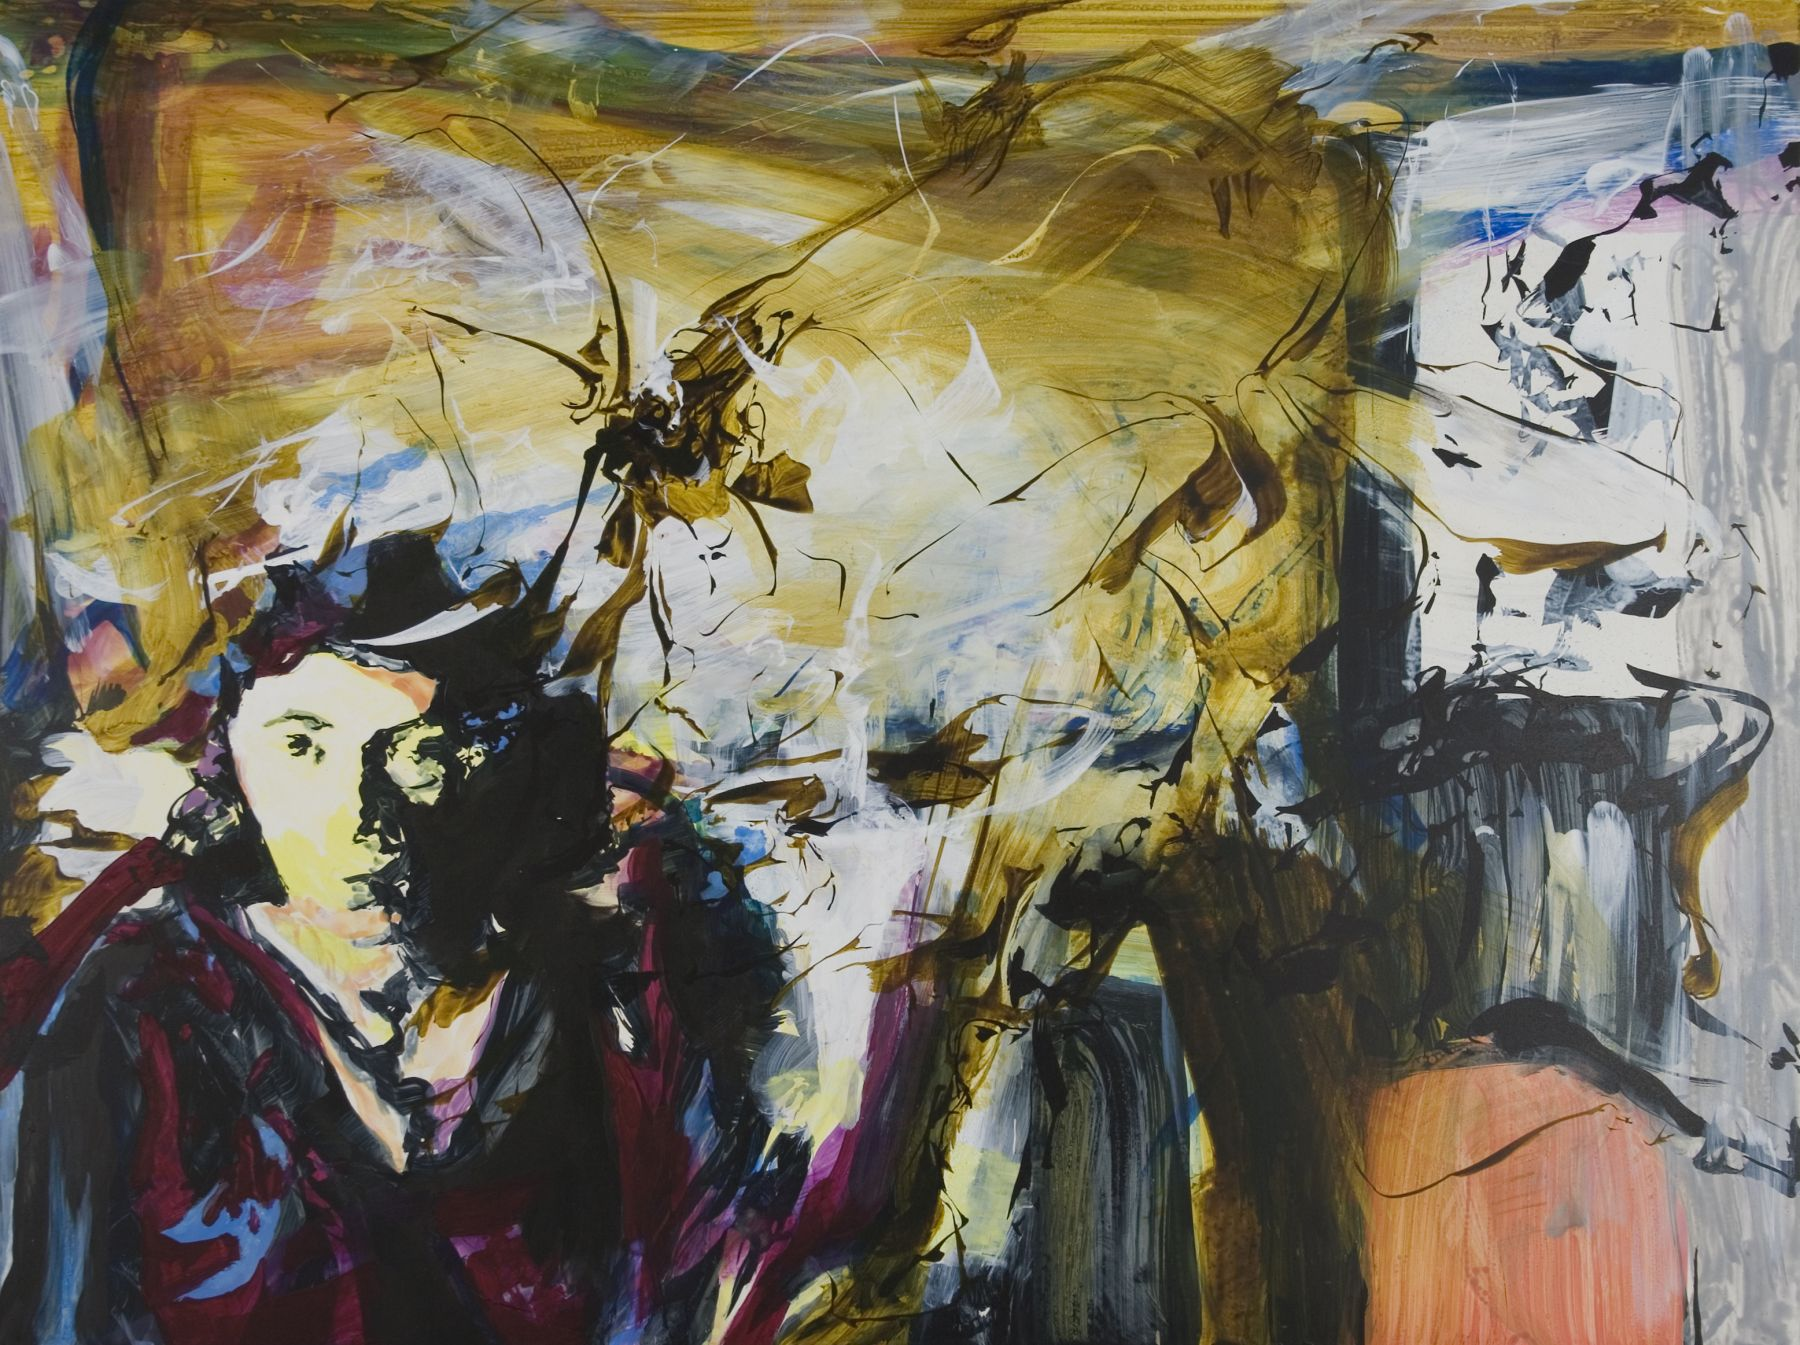 Kim Piotrowski, If Not For You (Joan Mitchell), 2018, acrylic ink and flashe on panel, 18 x 24 inches